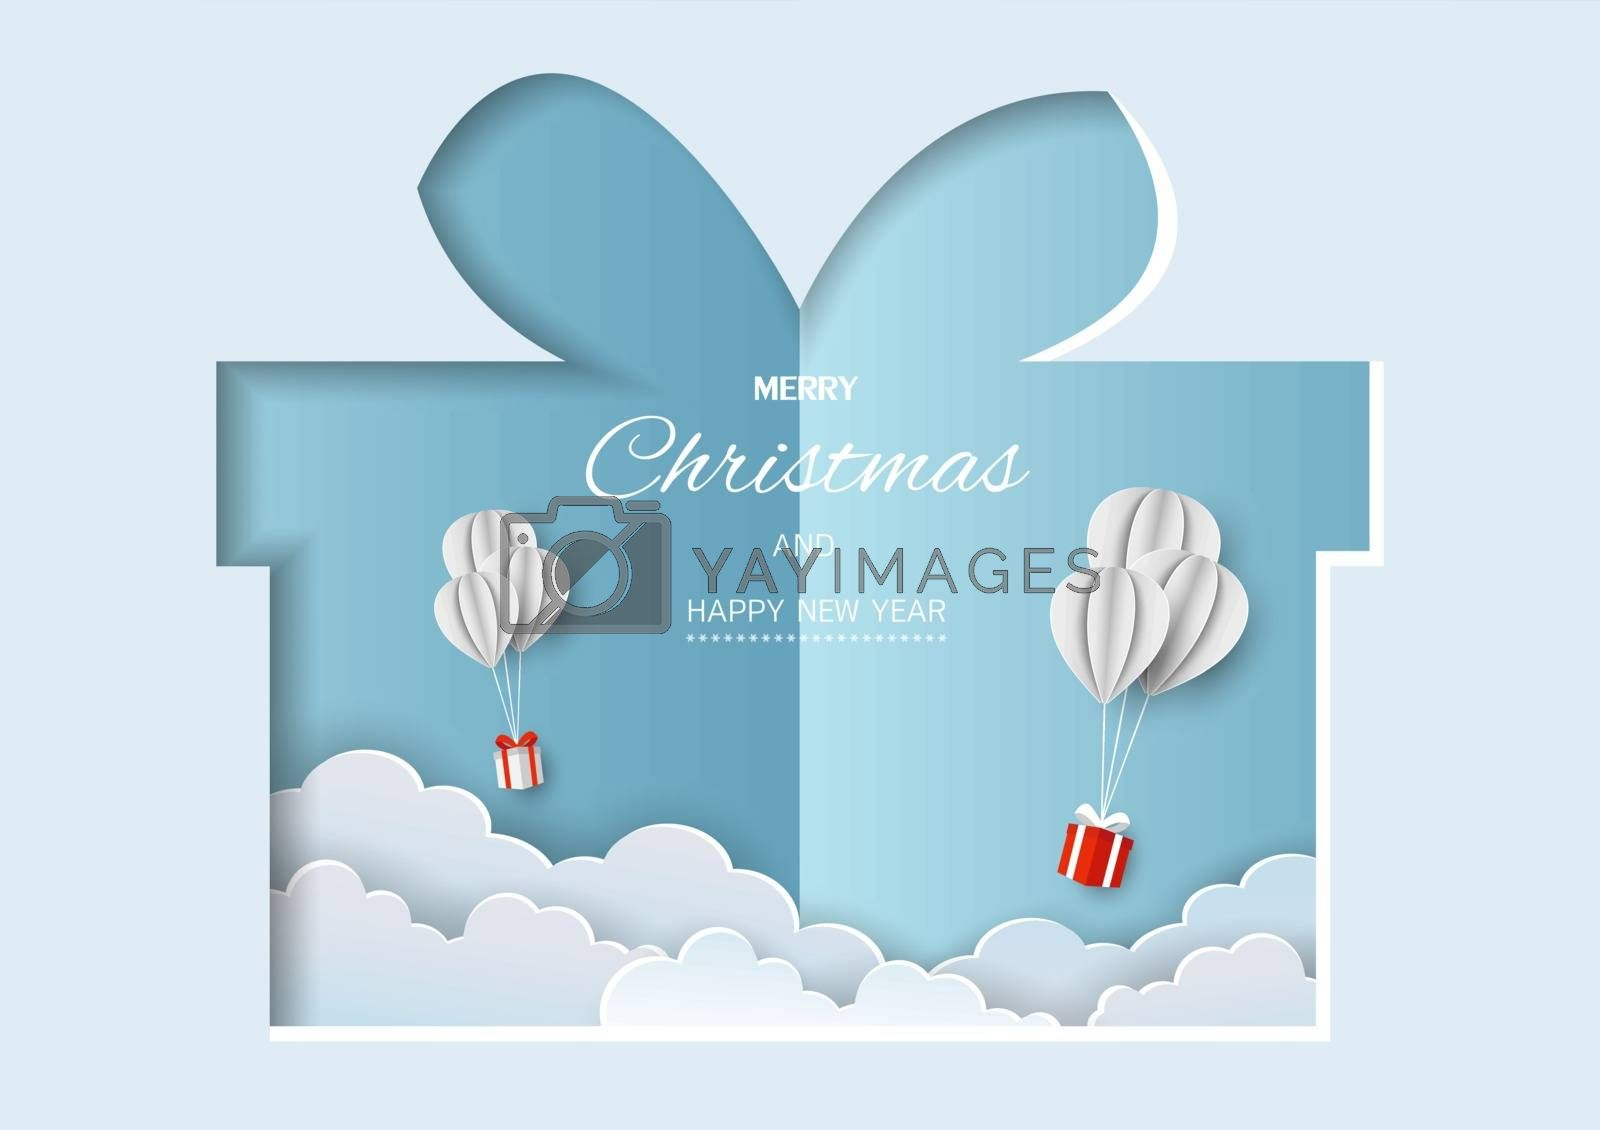 Merry Christmas and Happy new year greeting card,gift boxes flying in the air on paper cut background by PIMPAKA